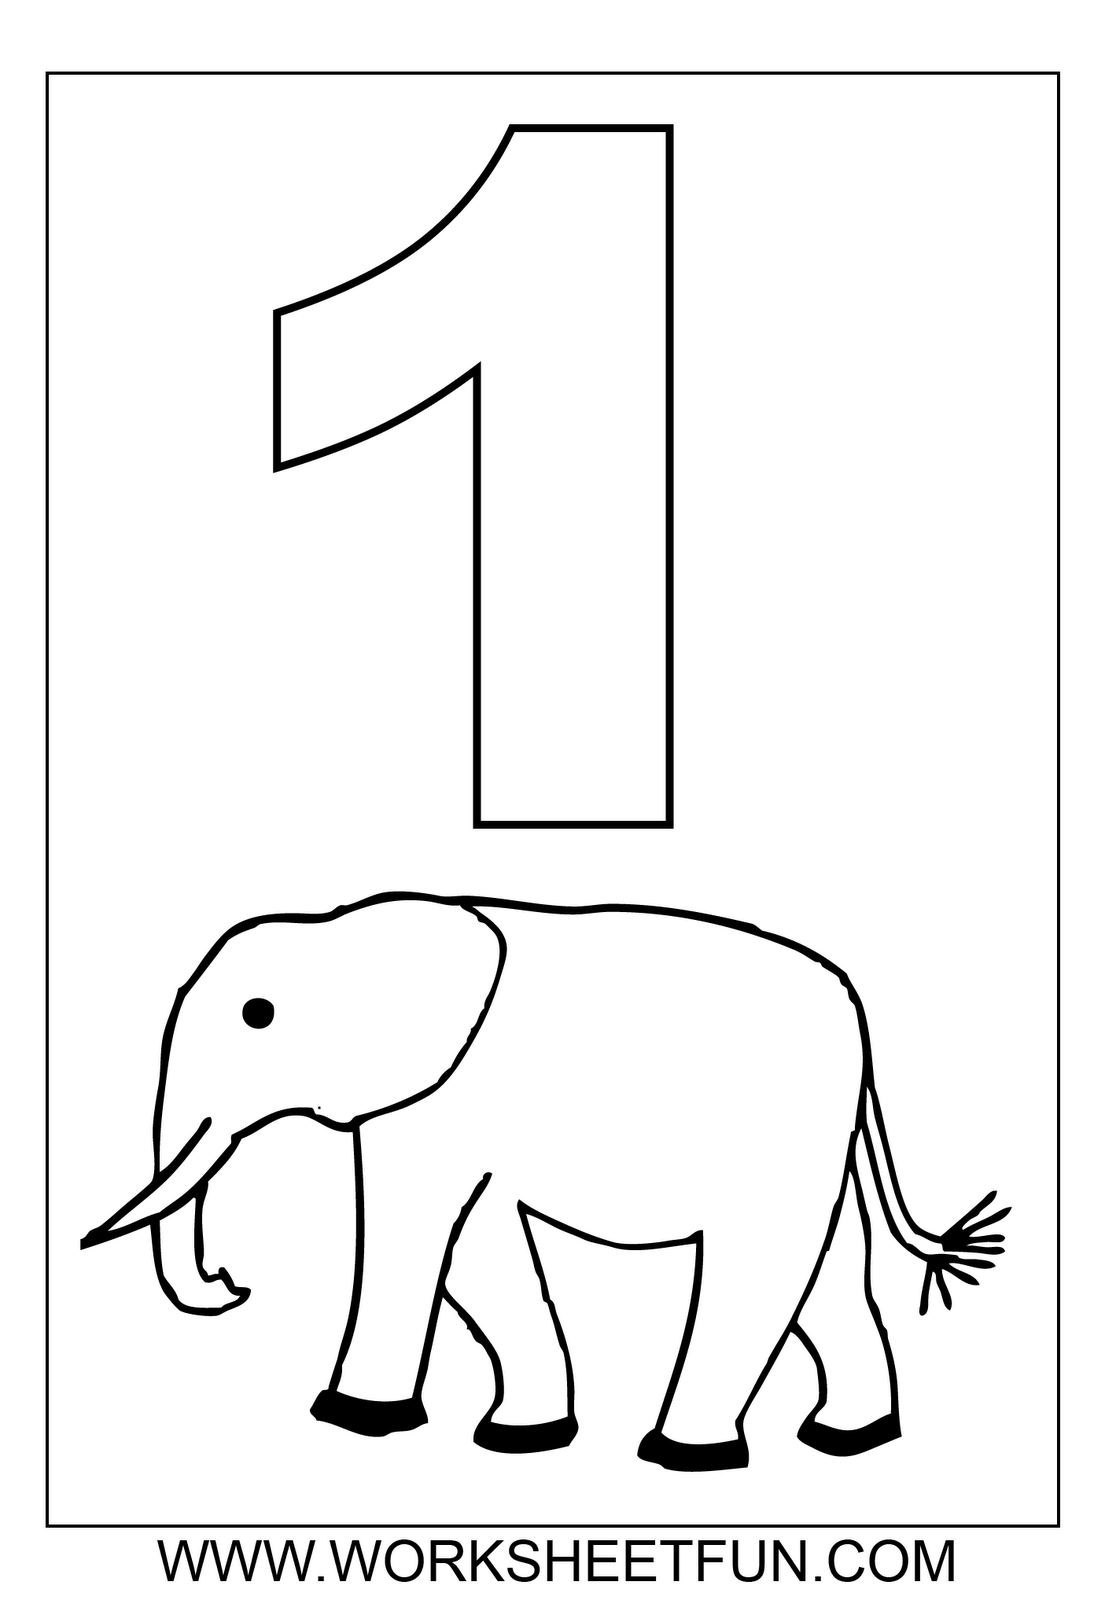 Clip Art Number 1 Coloring Pages 1000 images about worksheets on pinterest coloring preschool and preschool